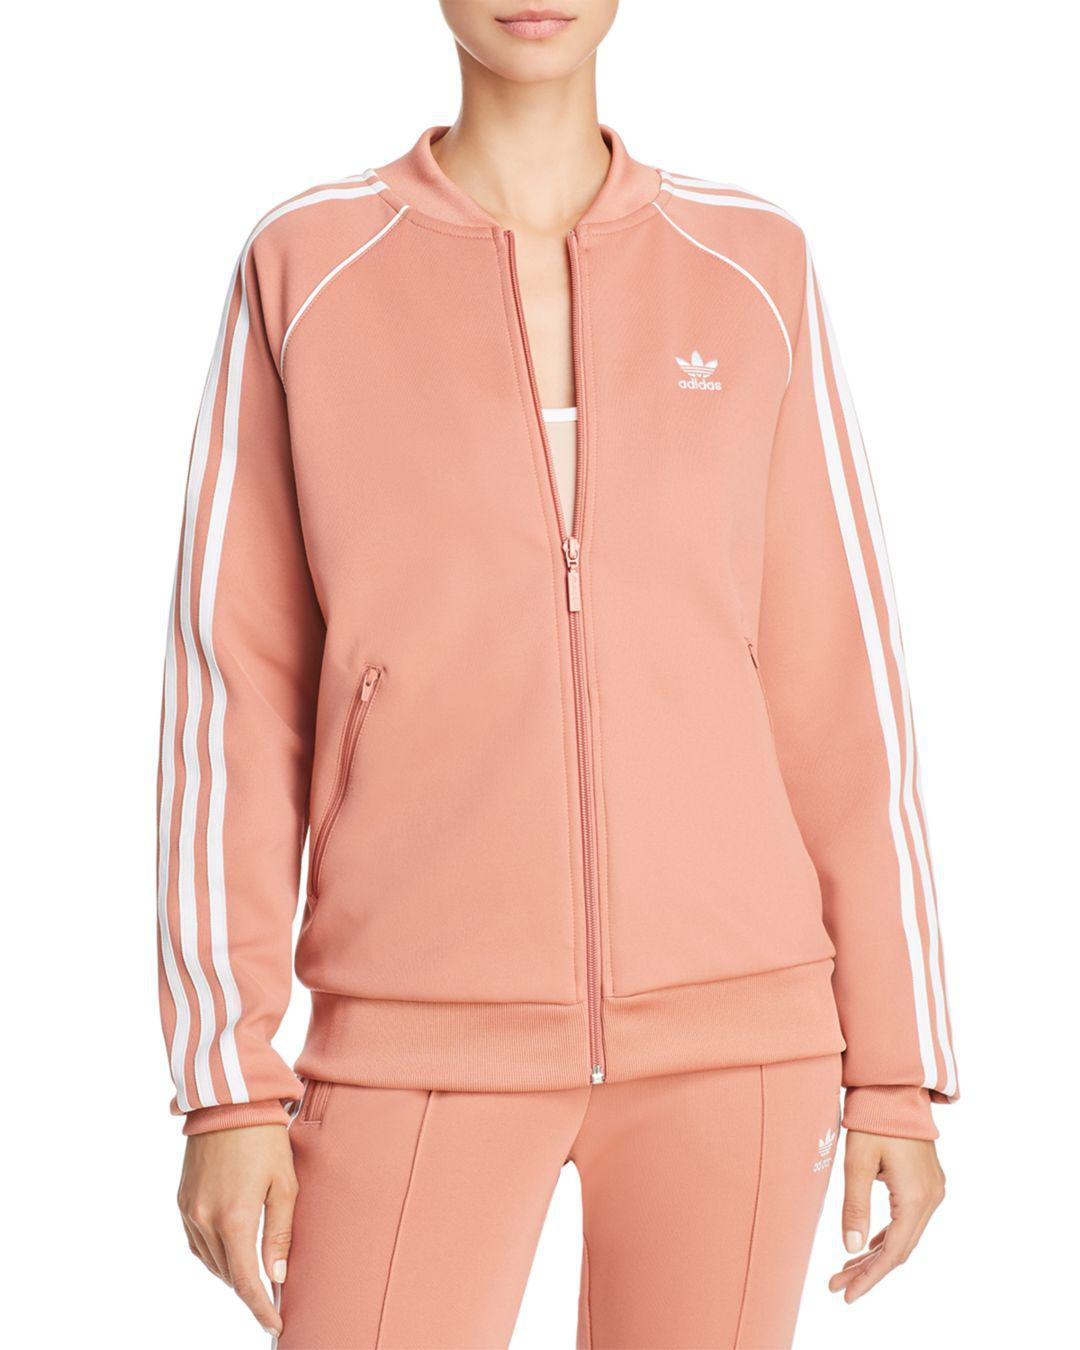 f5f64594d Adidas Originals Stripe-detail Track Jacket in Pink - Lyst